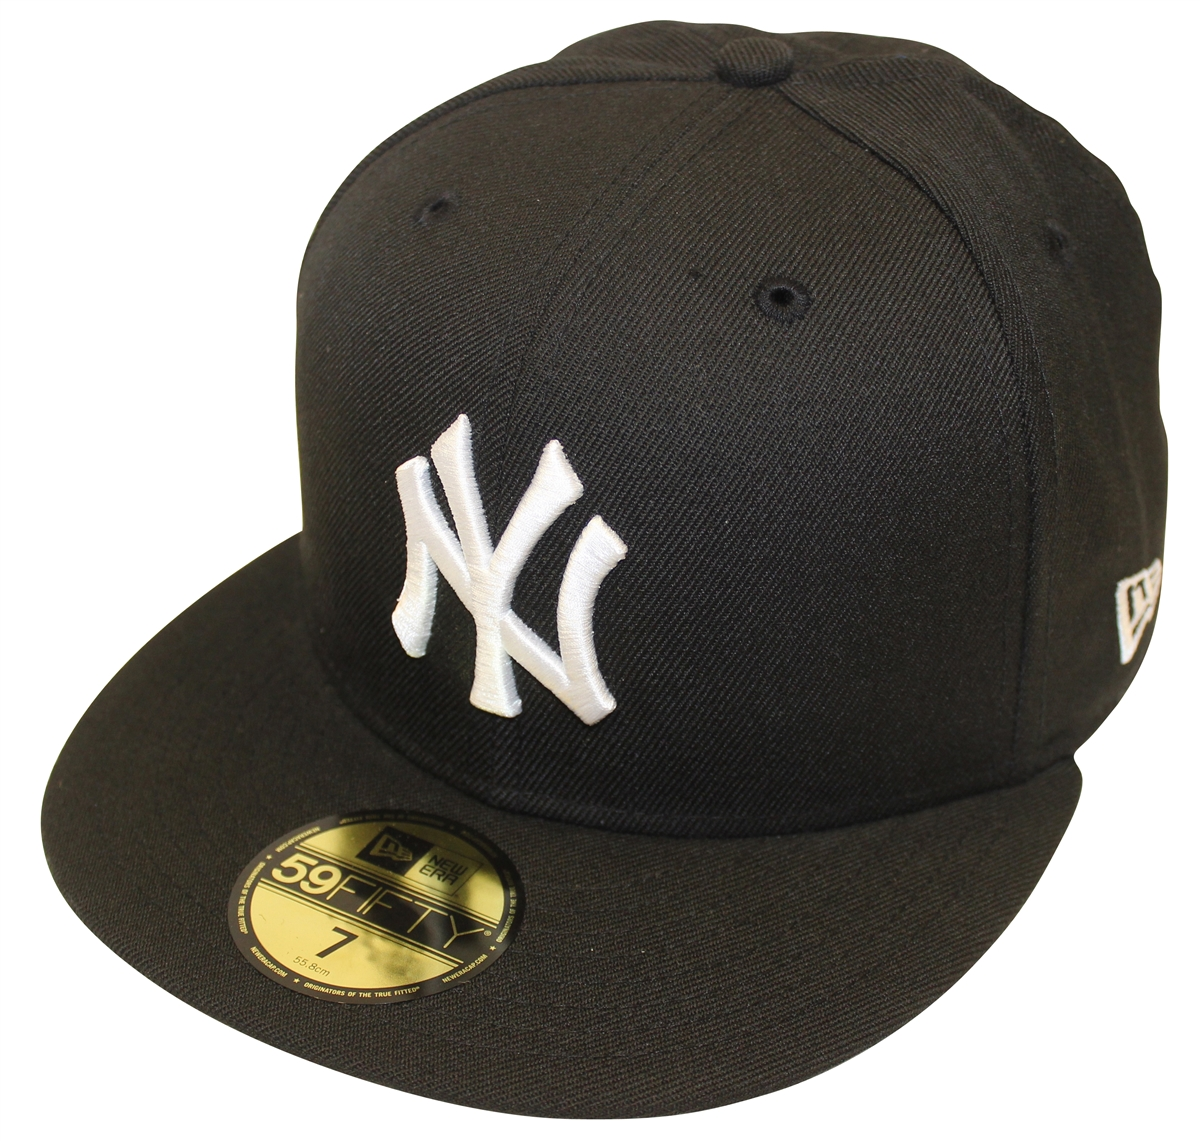 c6a445d44d5 New Era 59Fifty MLB Basic Black White New York Yankees Fitted Cap